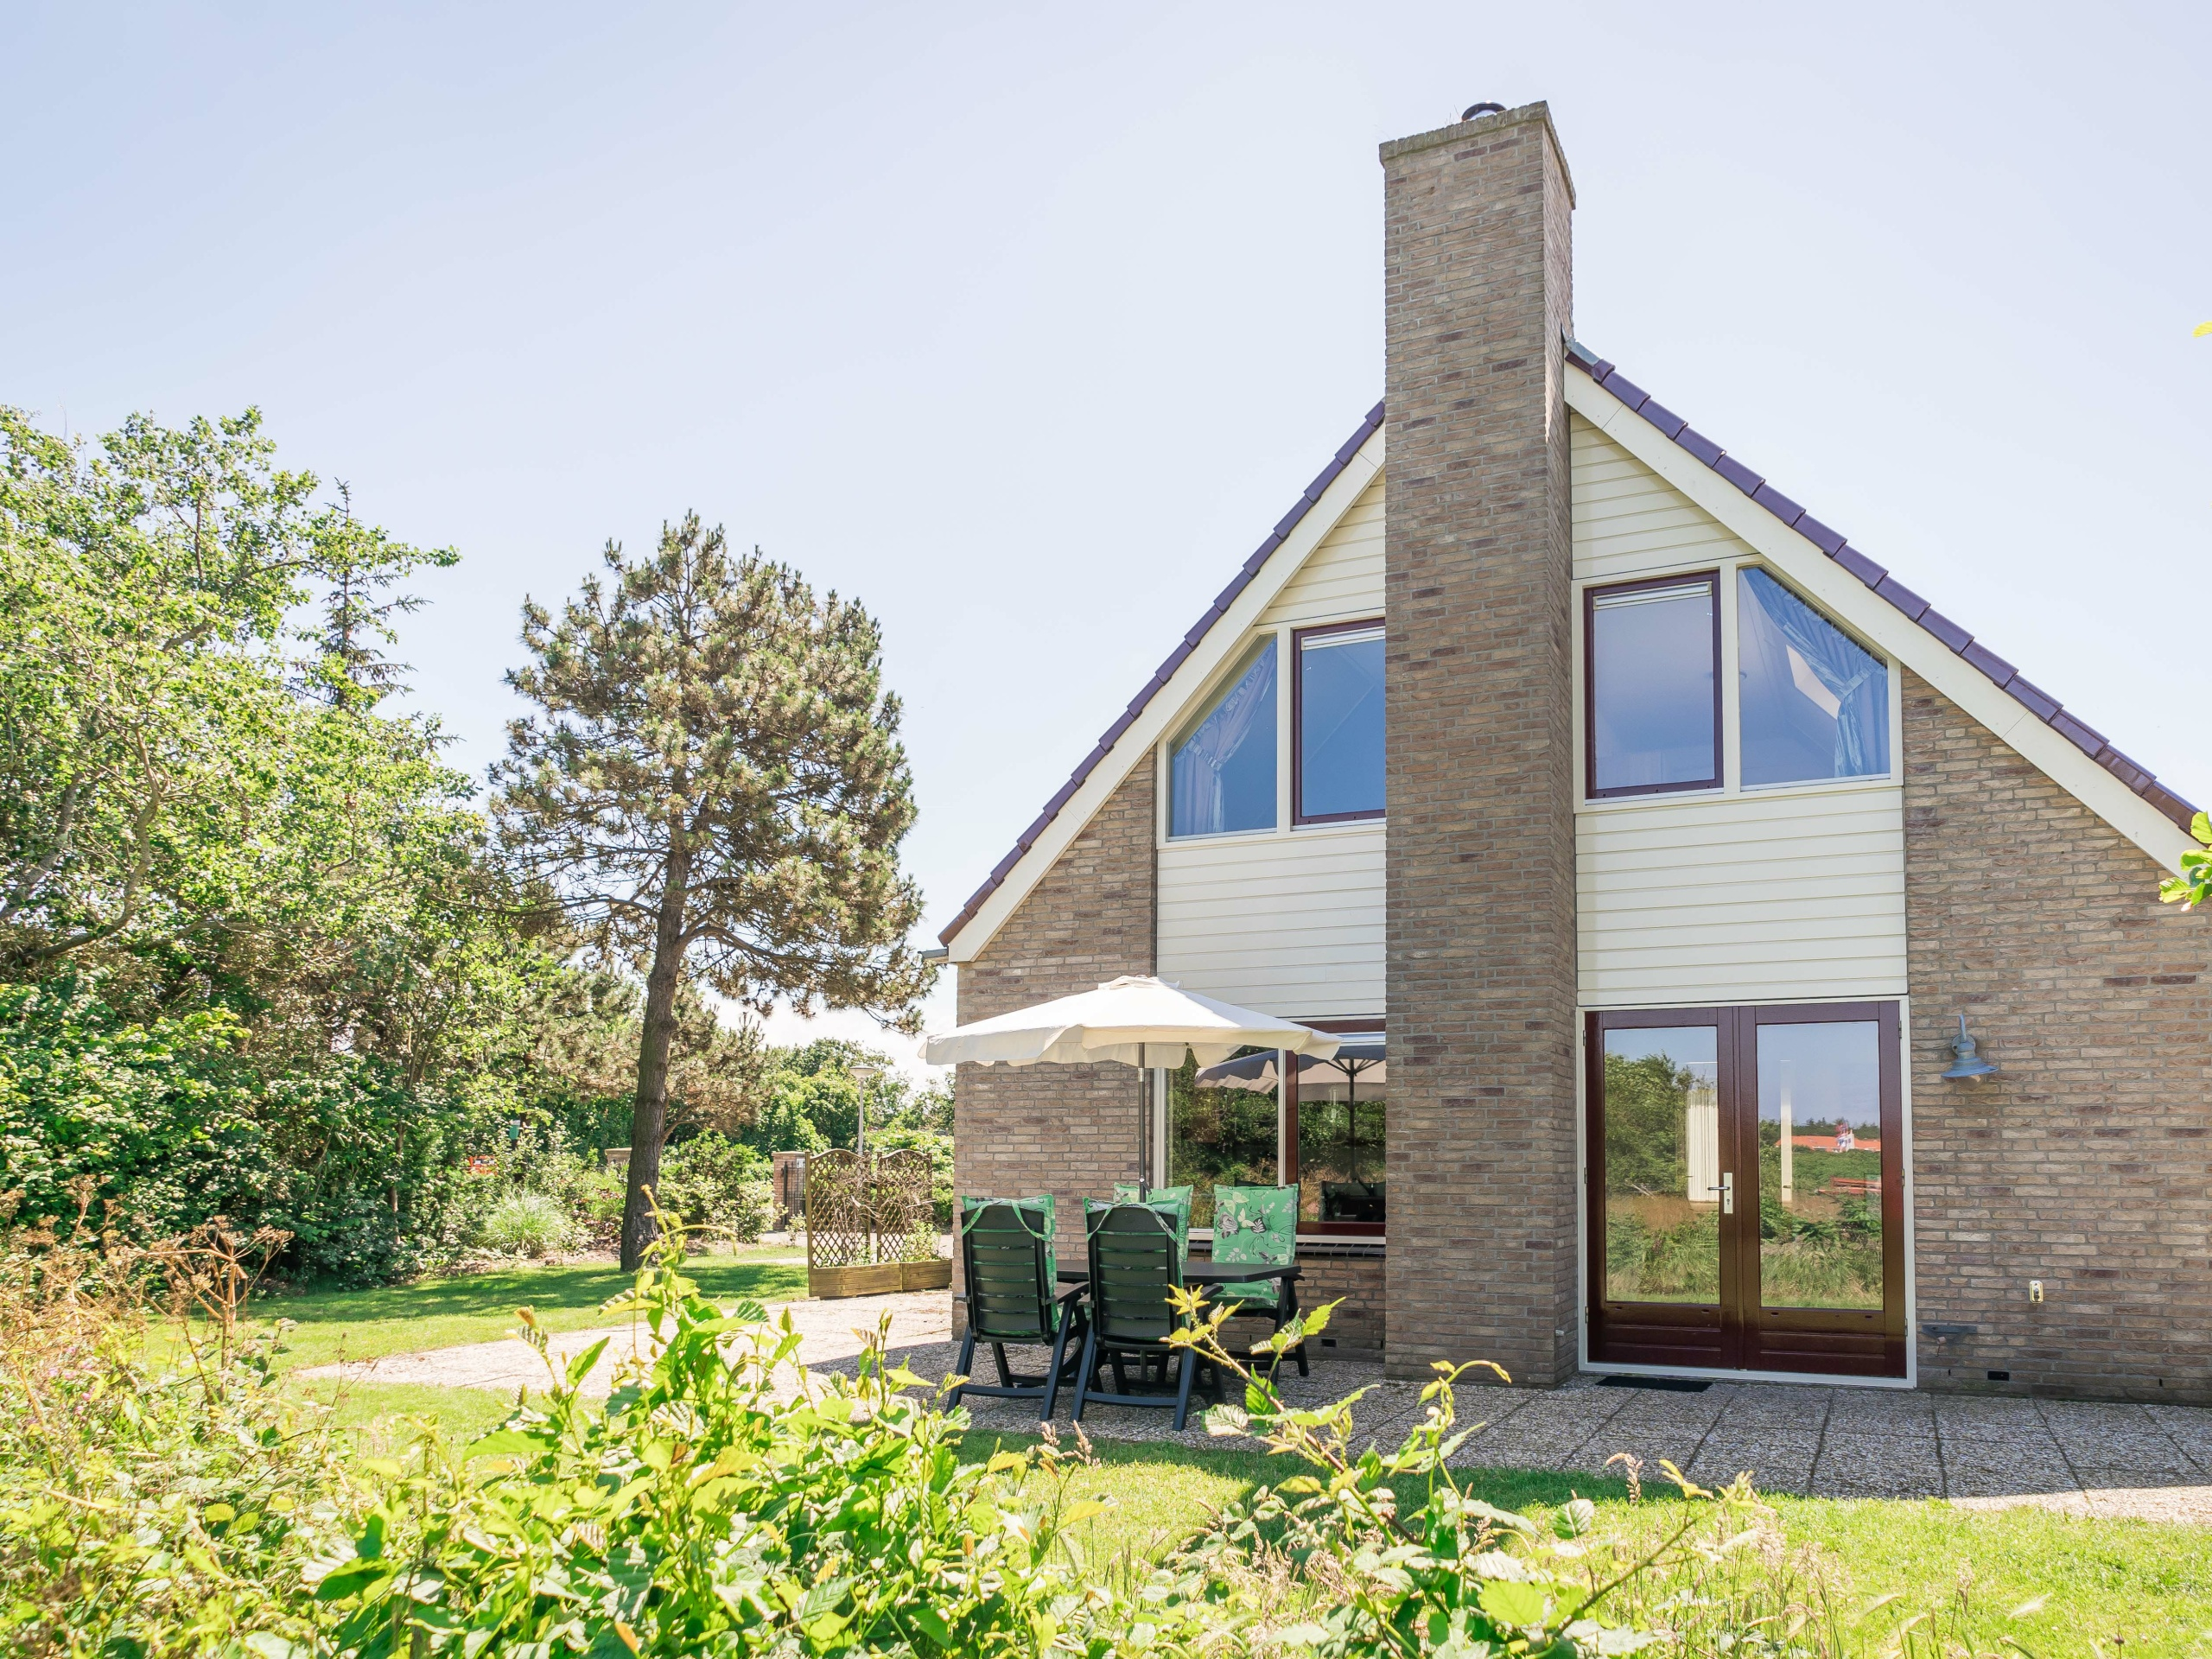 Comfortable holiday home on a small park in a beautiful location near Koog